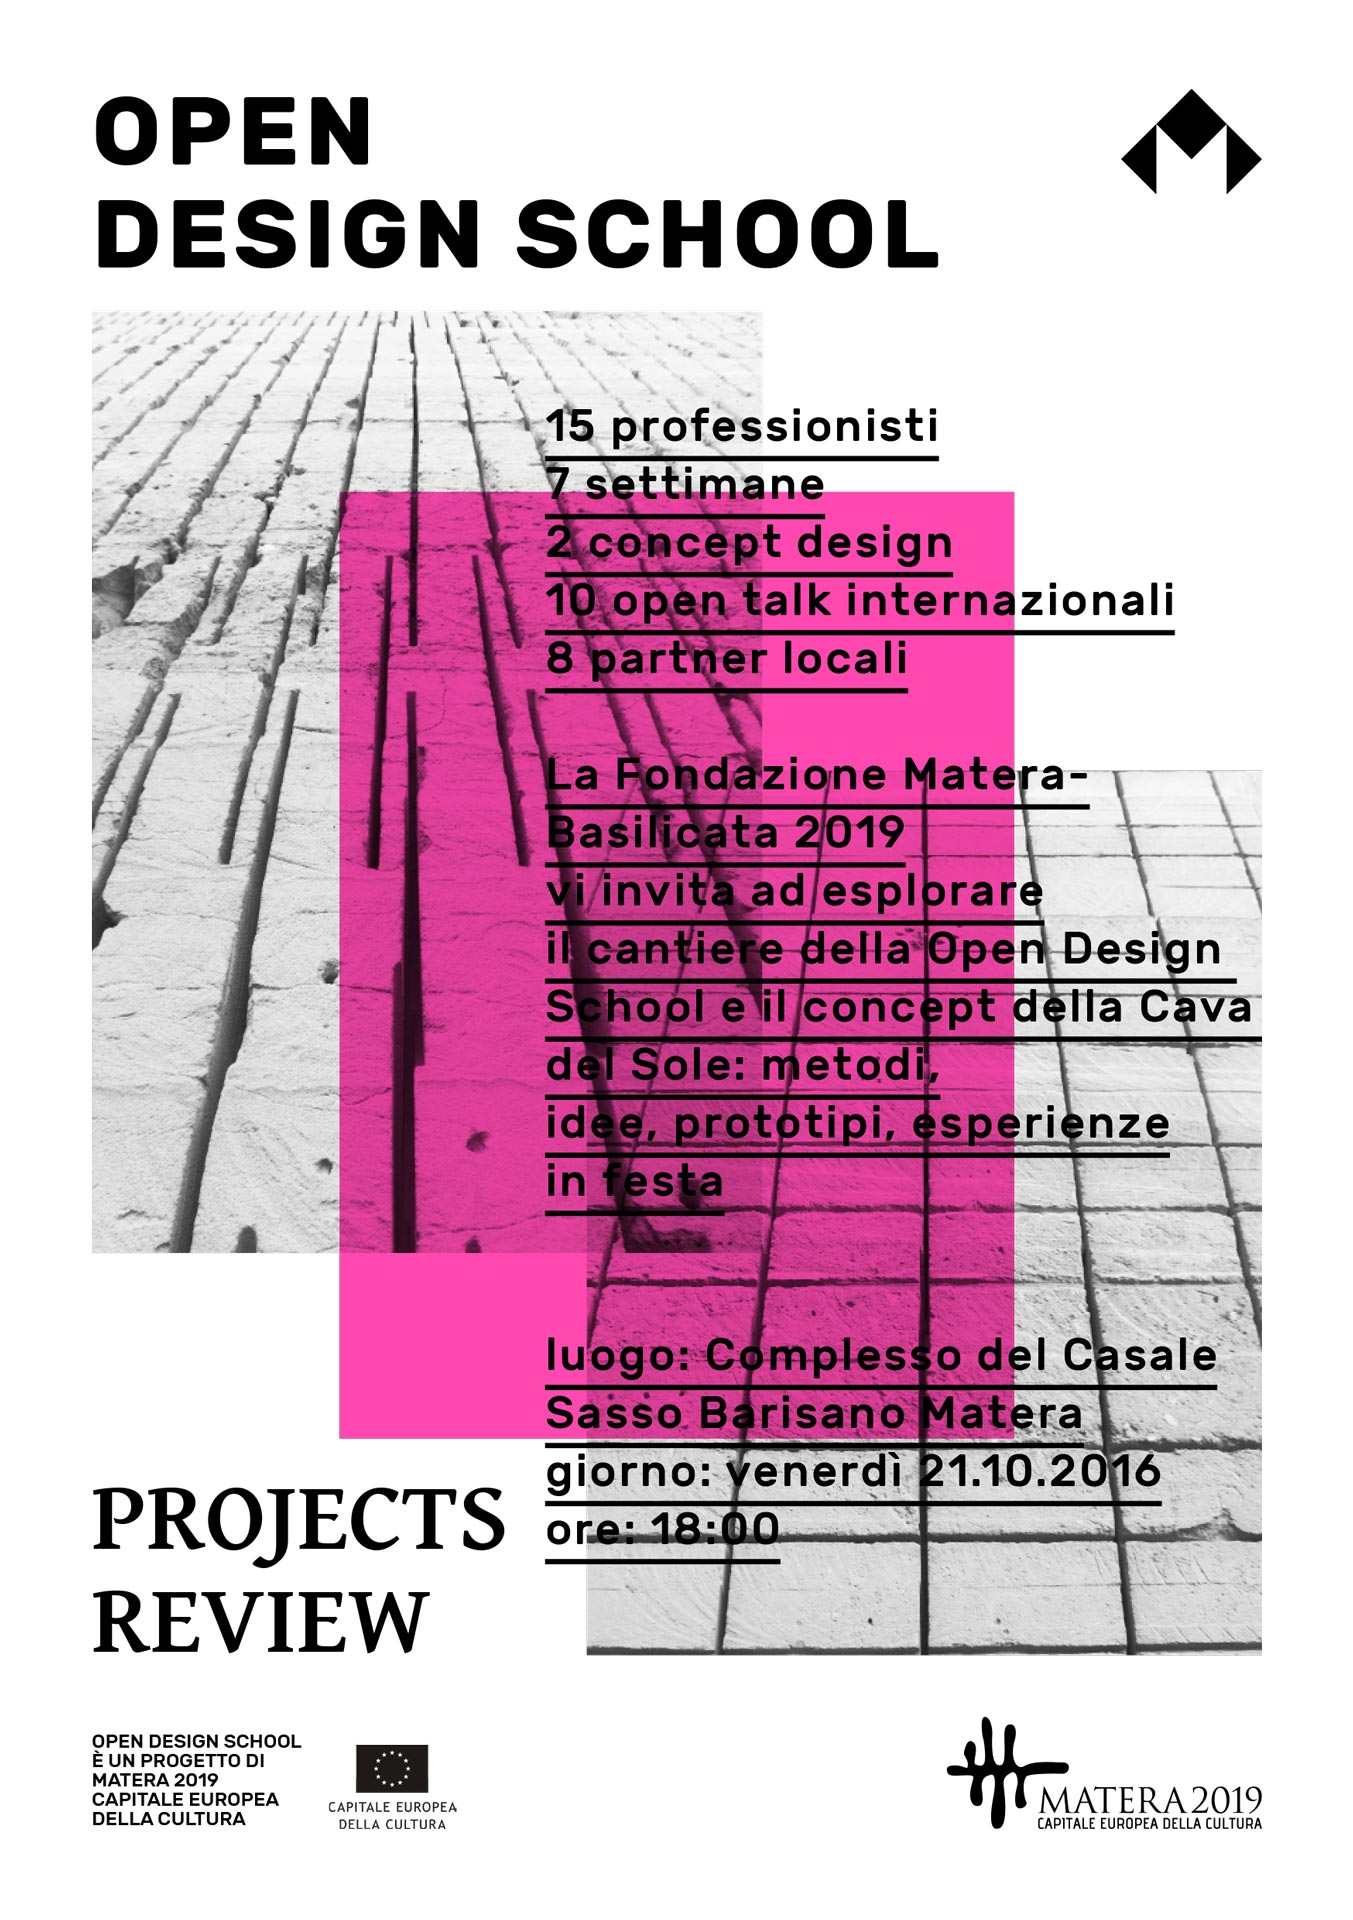 opendesignschool-290a1130